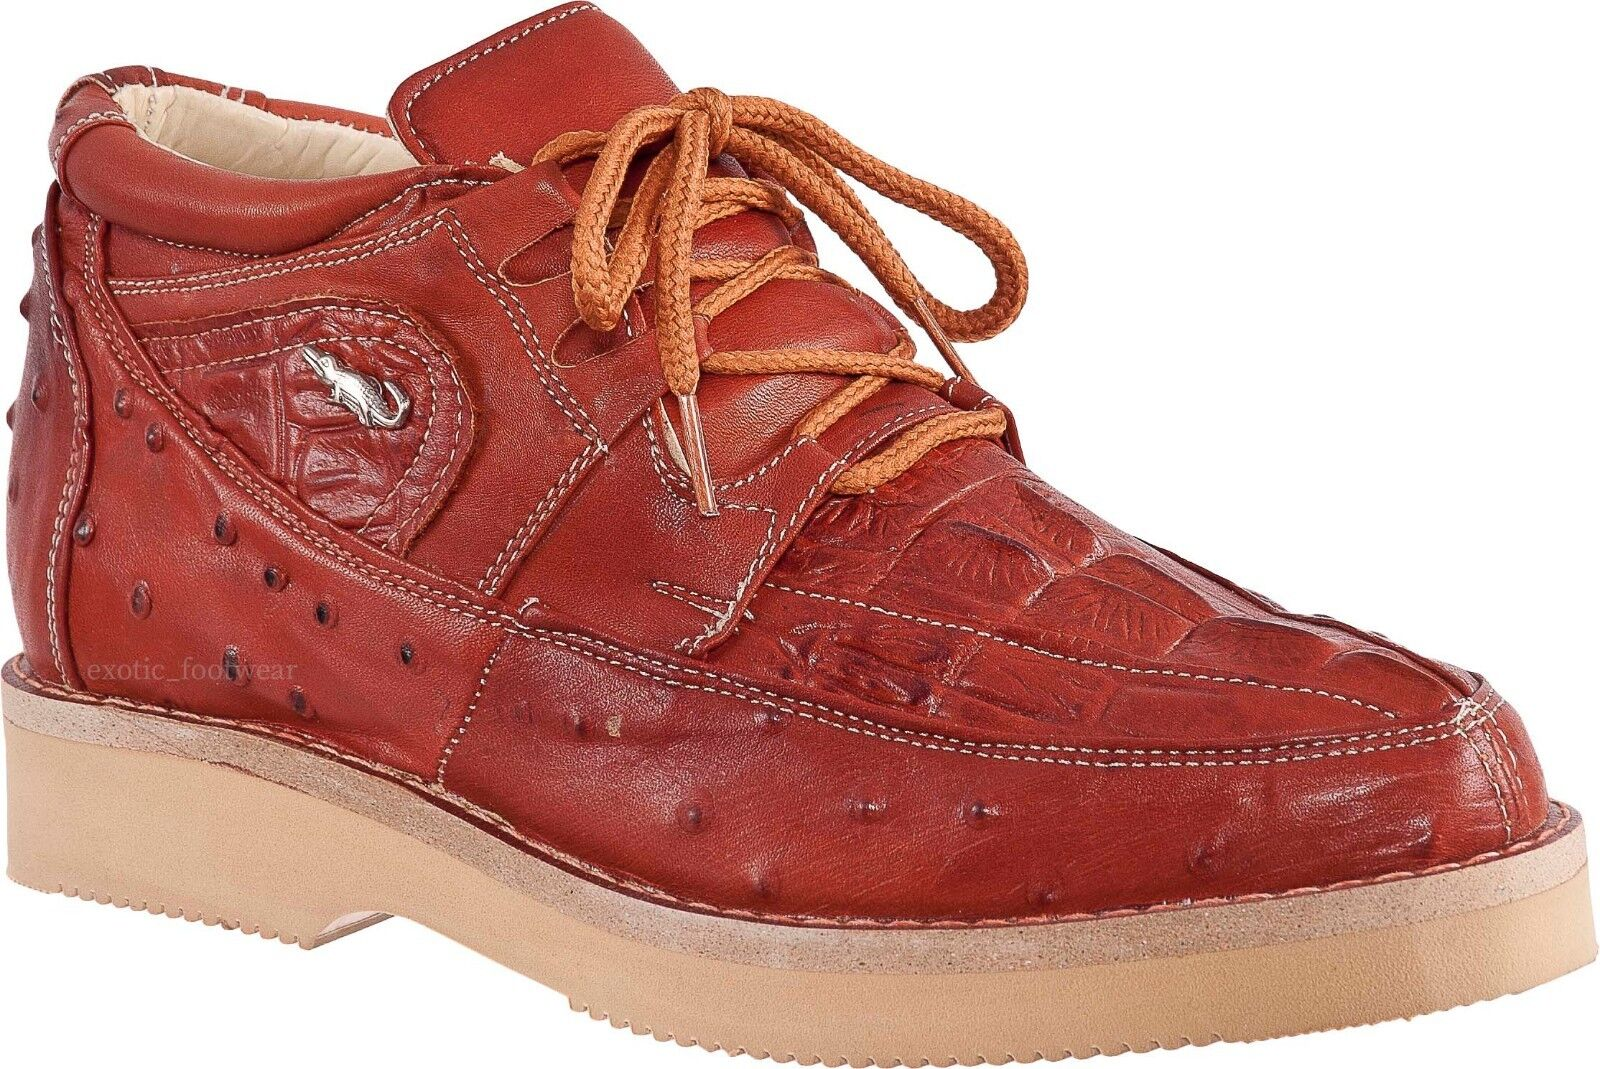 Men's Potro Rebelde Caiman With Ostrich Print Lace Up Sneaker Exotic Casual shoes